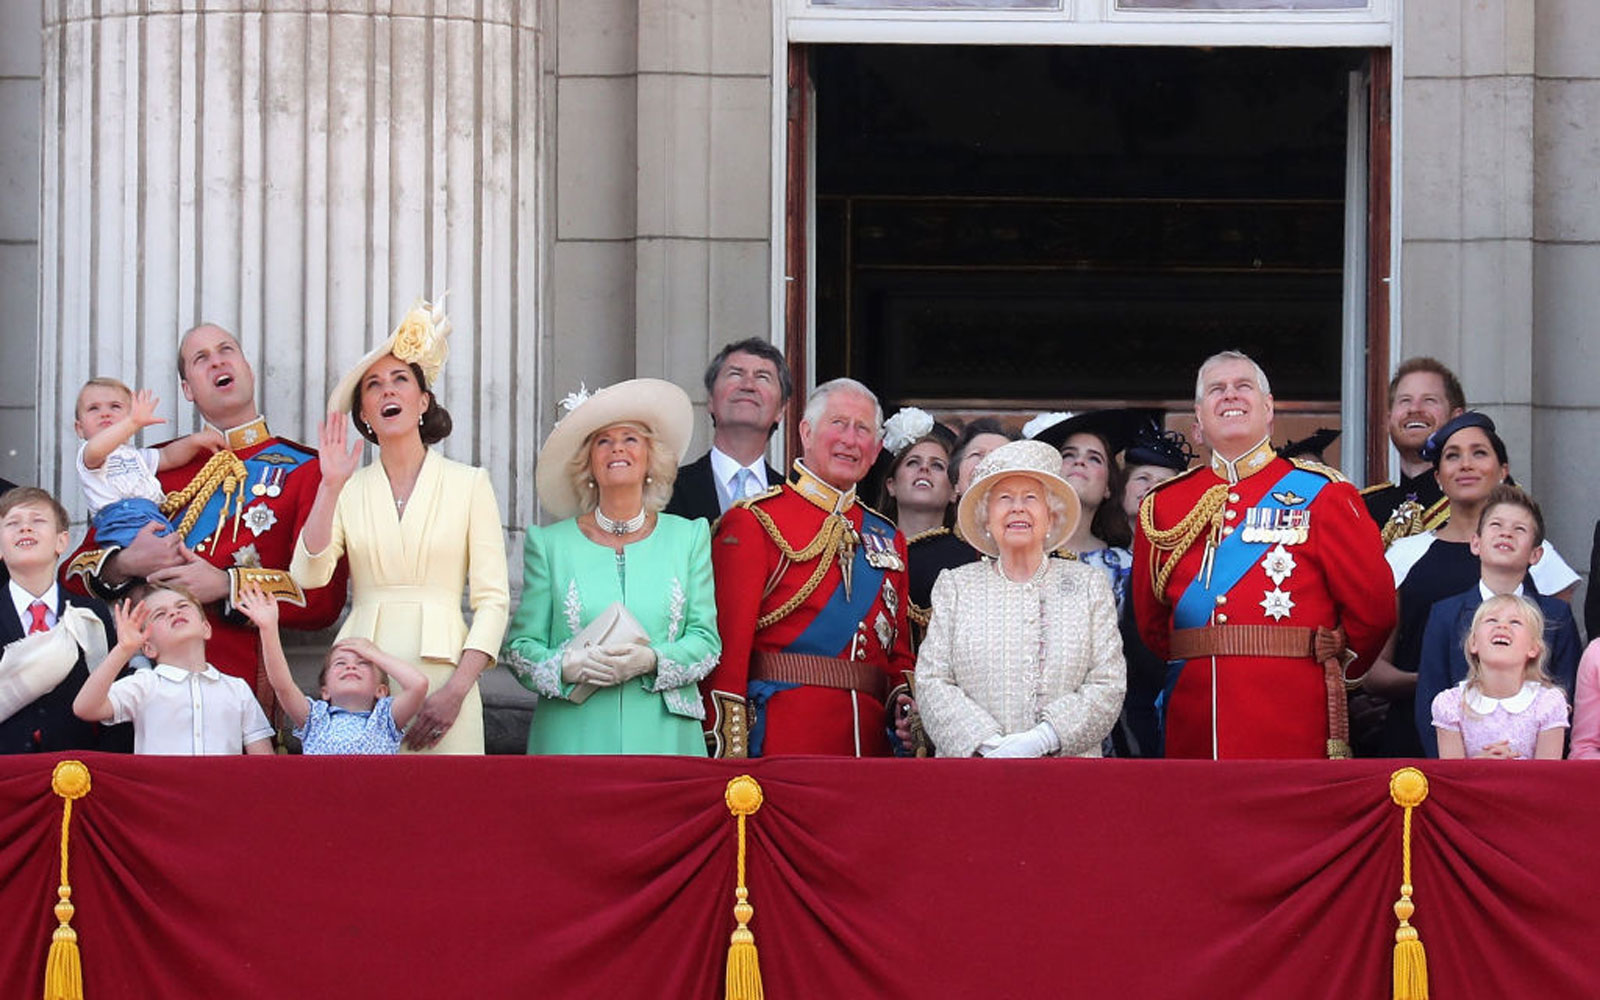 The Royal Family Has a WhatsApp Group Chat They Use to 'Set Up Get-togethers' Over the Summer